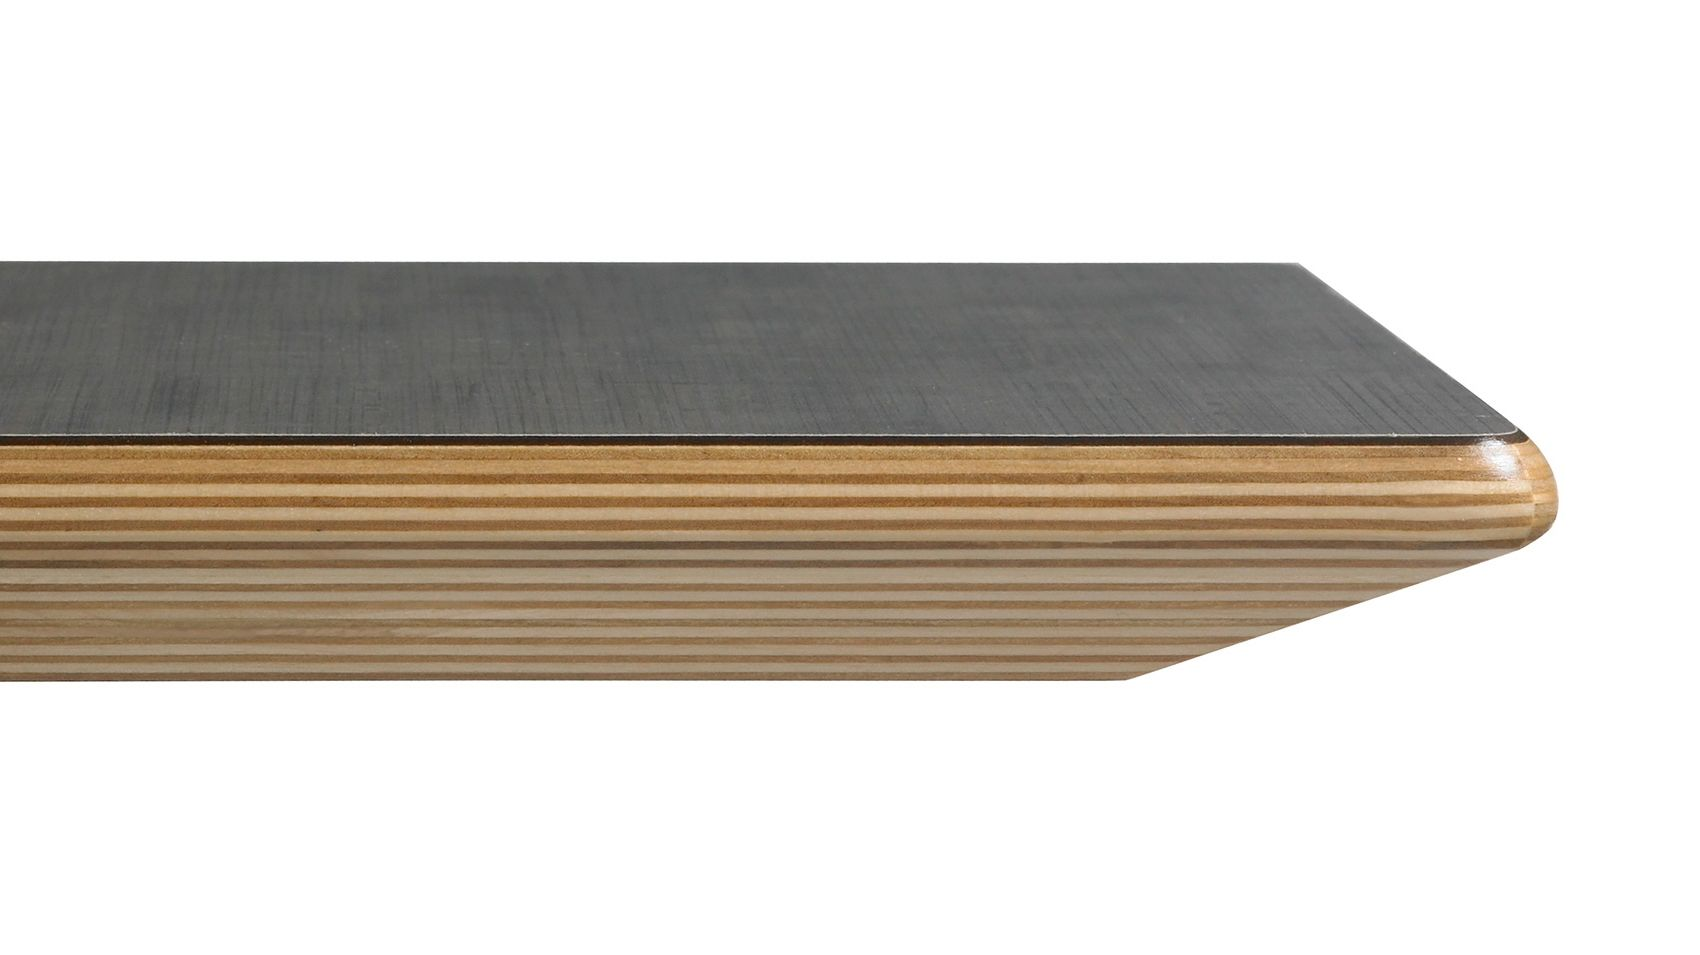 Hpl Top Knife Edge Laminate Table Top Plywood Table Plywood Coffee Table